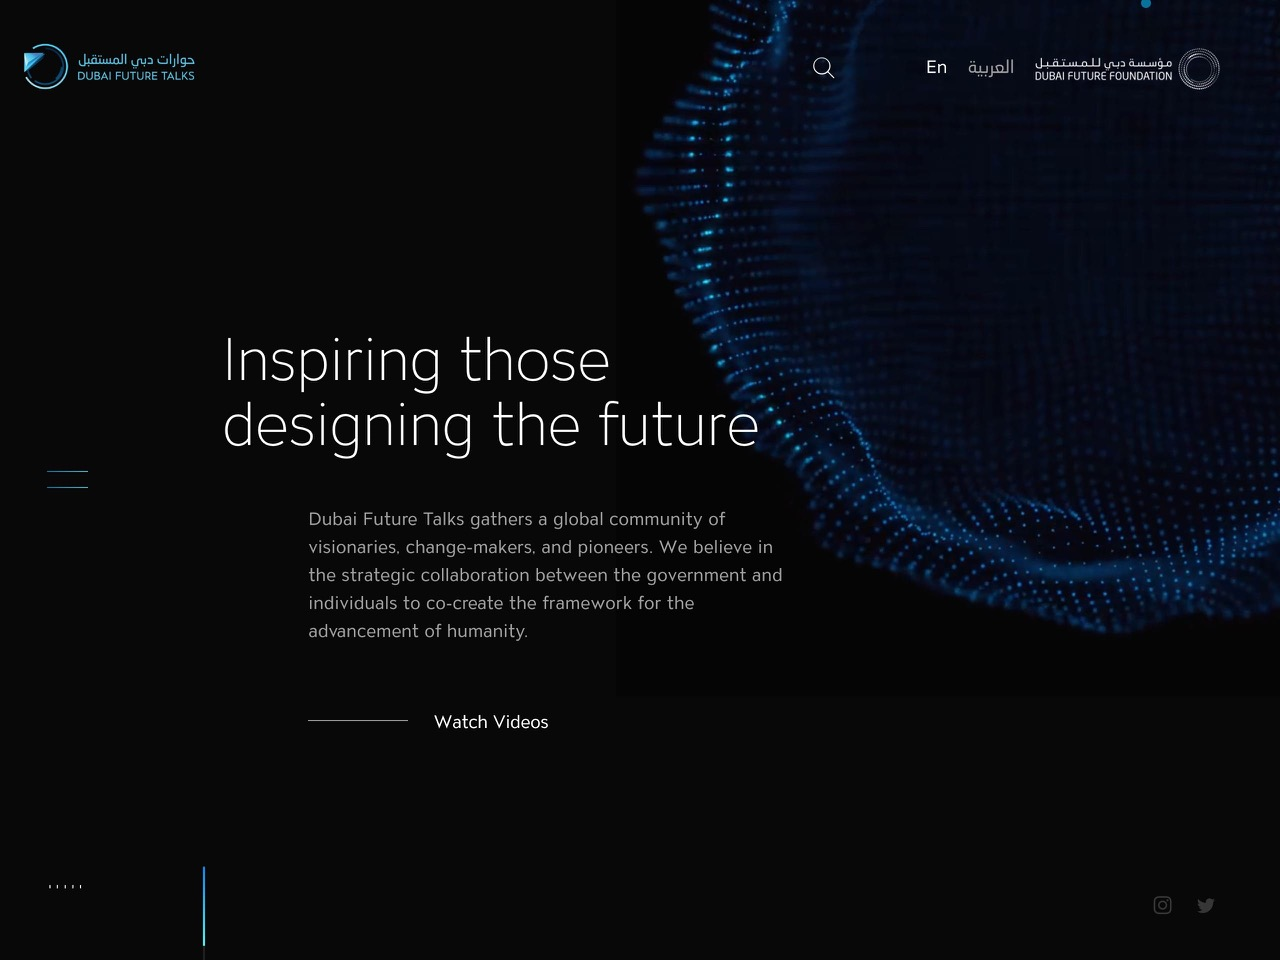 Inspiring those designing the future